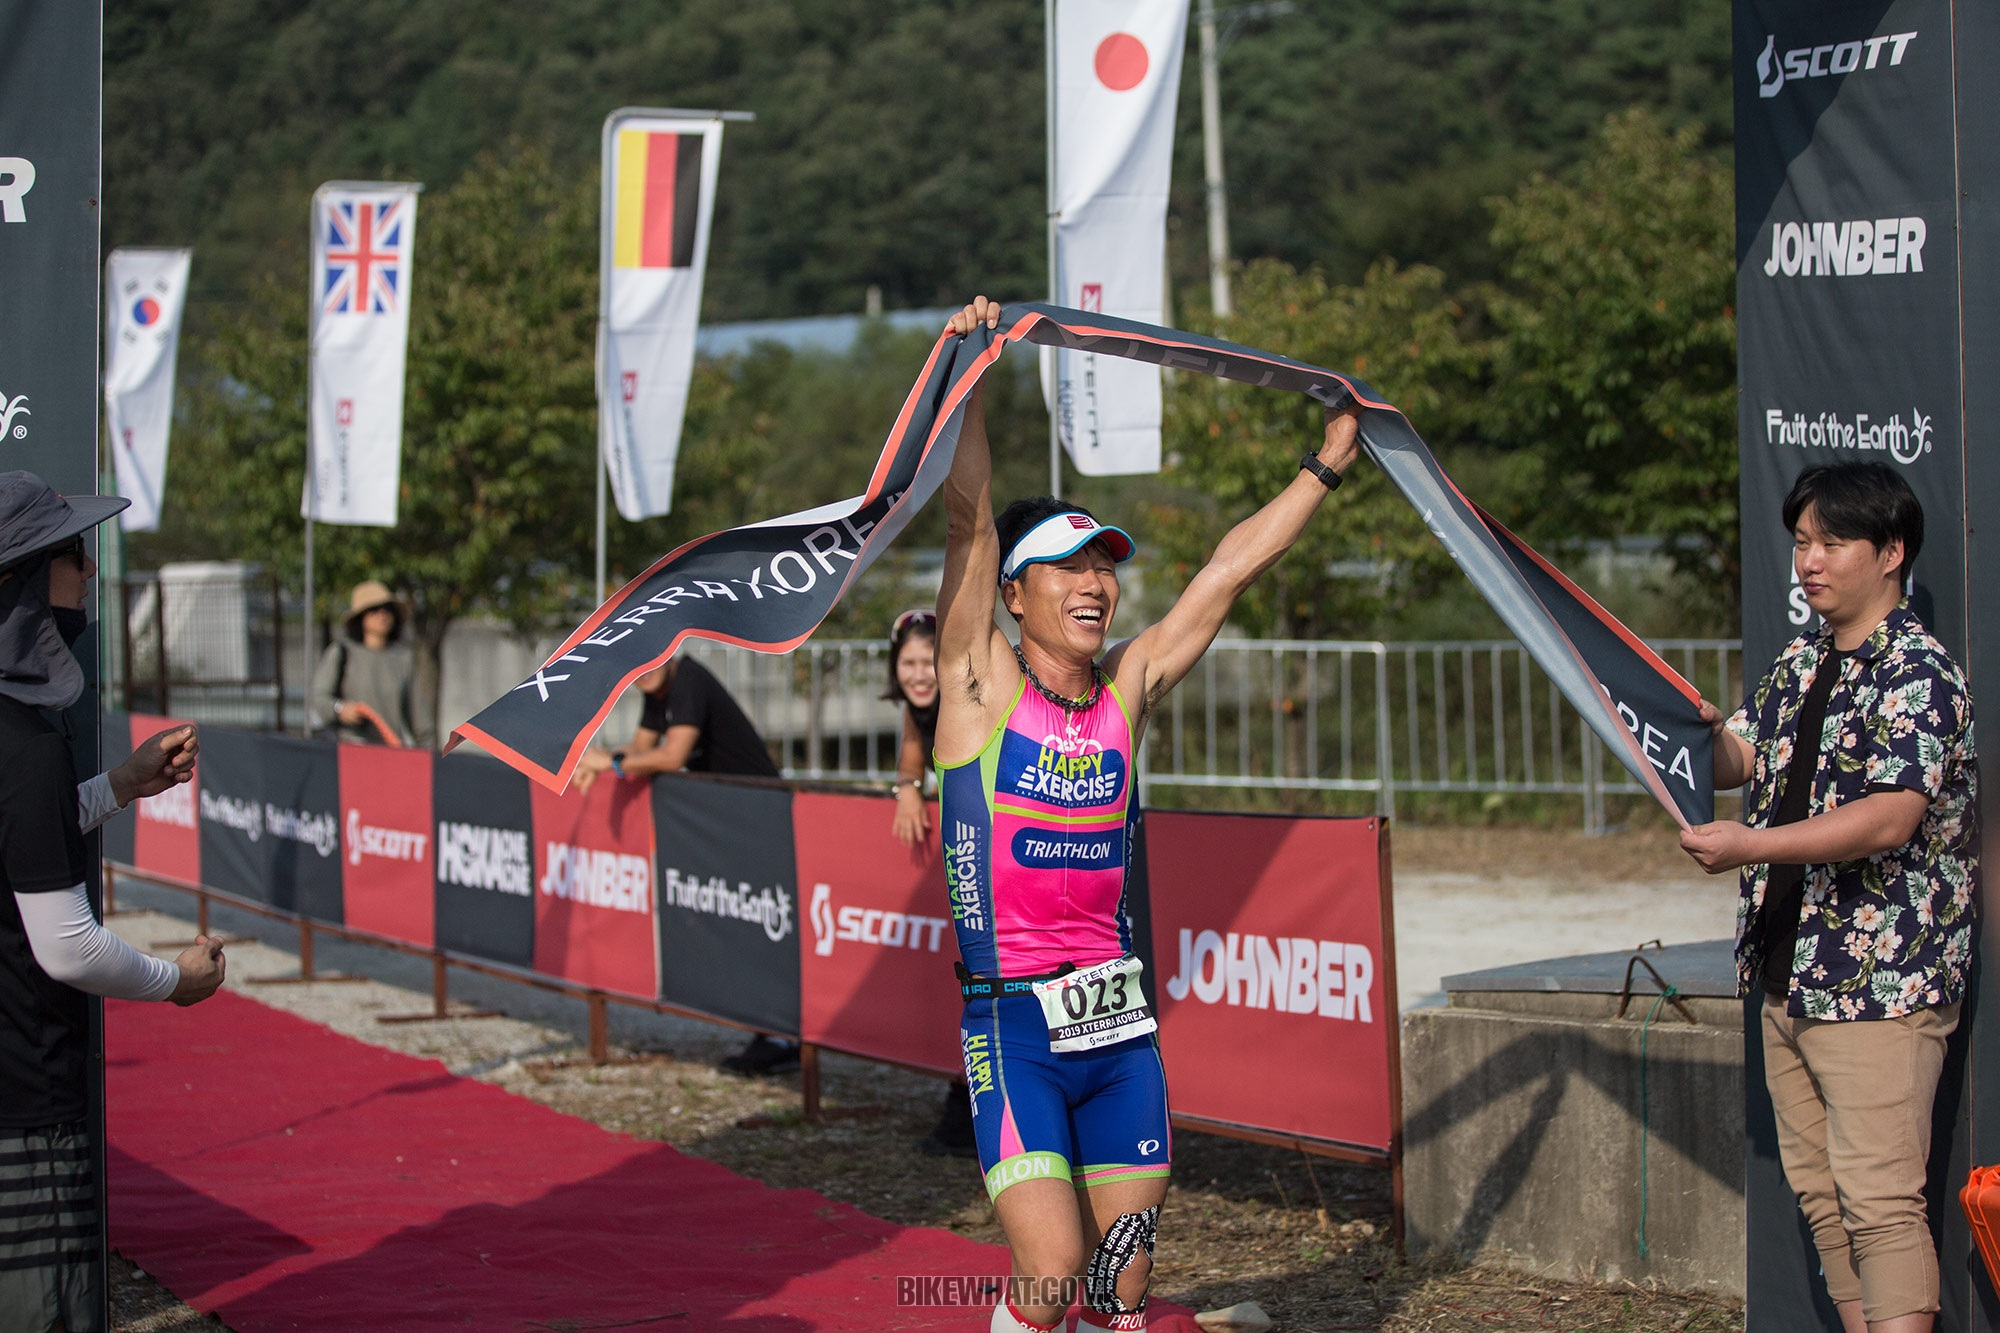 event_2019_SCOTT_XTERRA_12.jpg